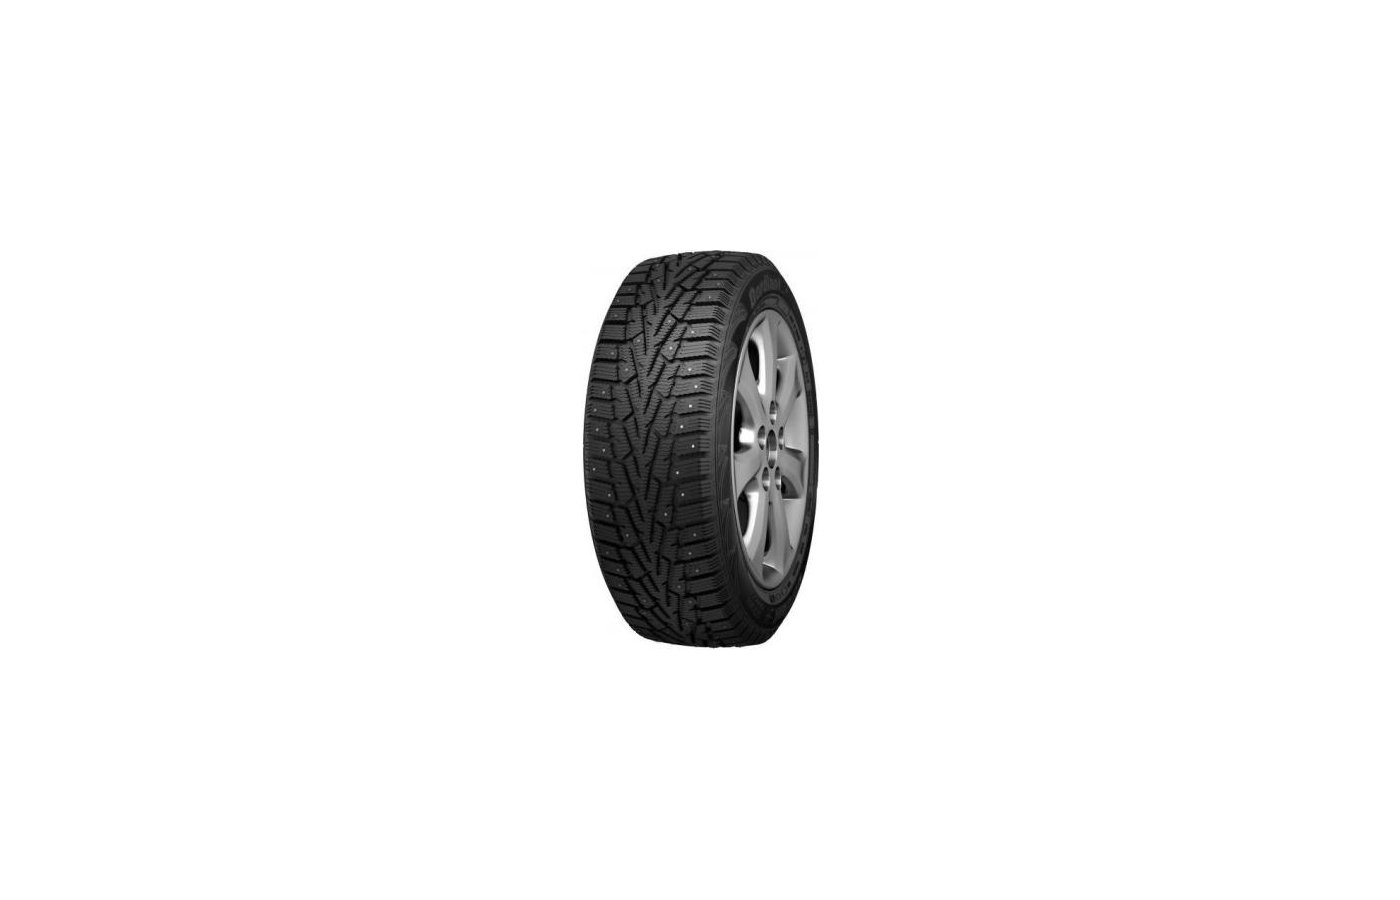 Шина Cordiant Snow Cross 215/60 R16 TL 95T шип